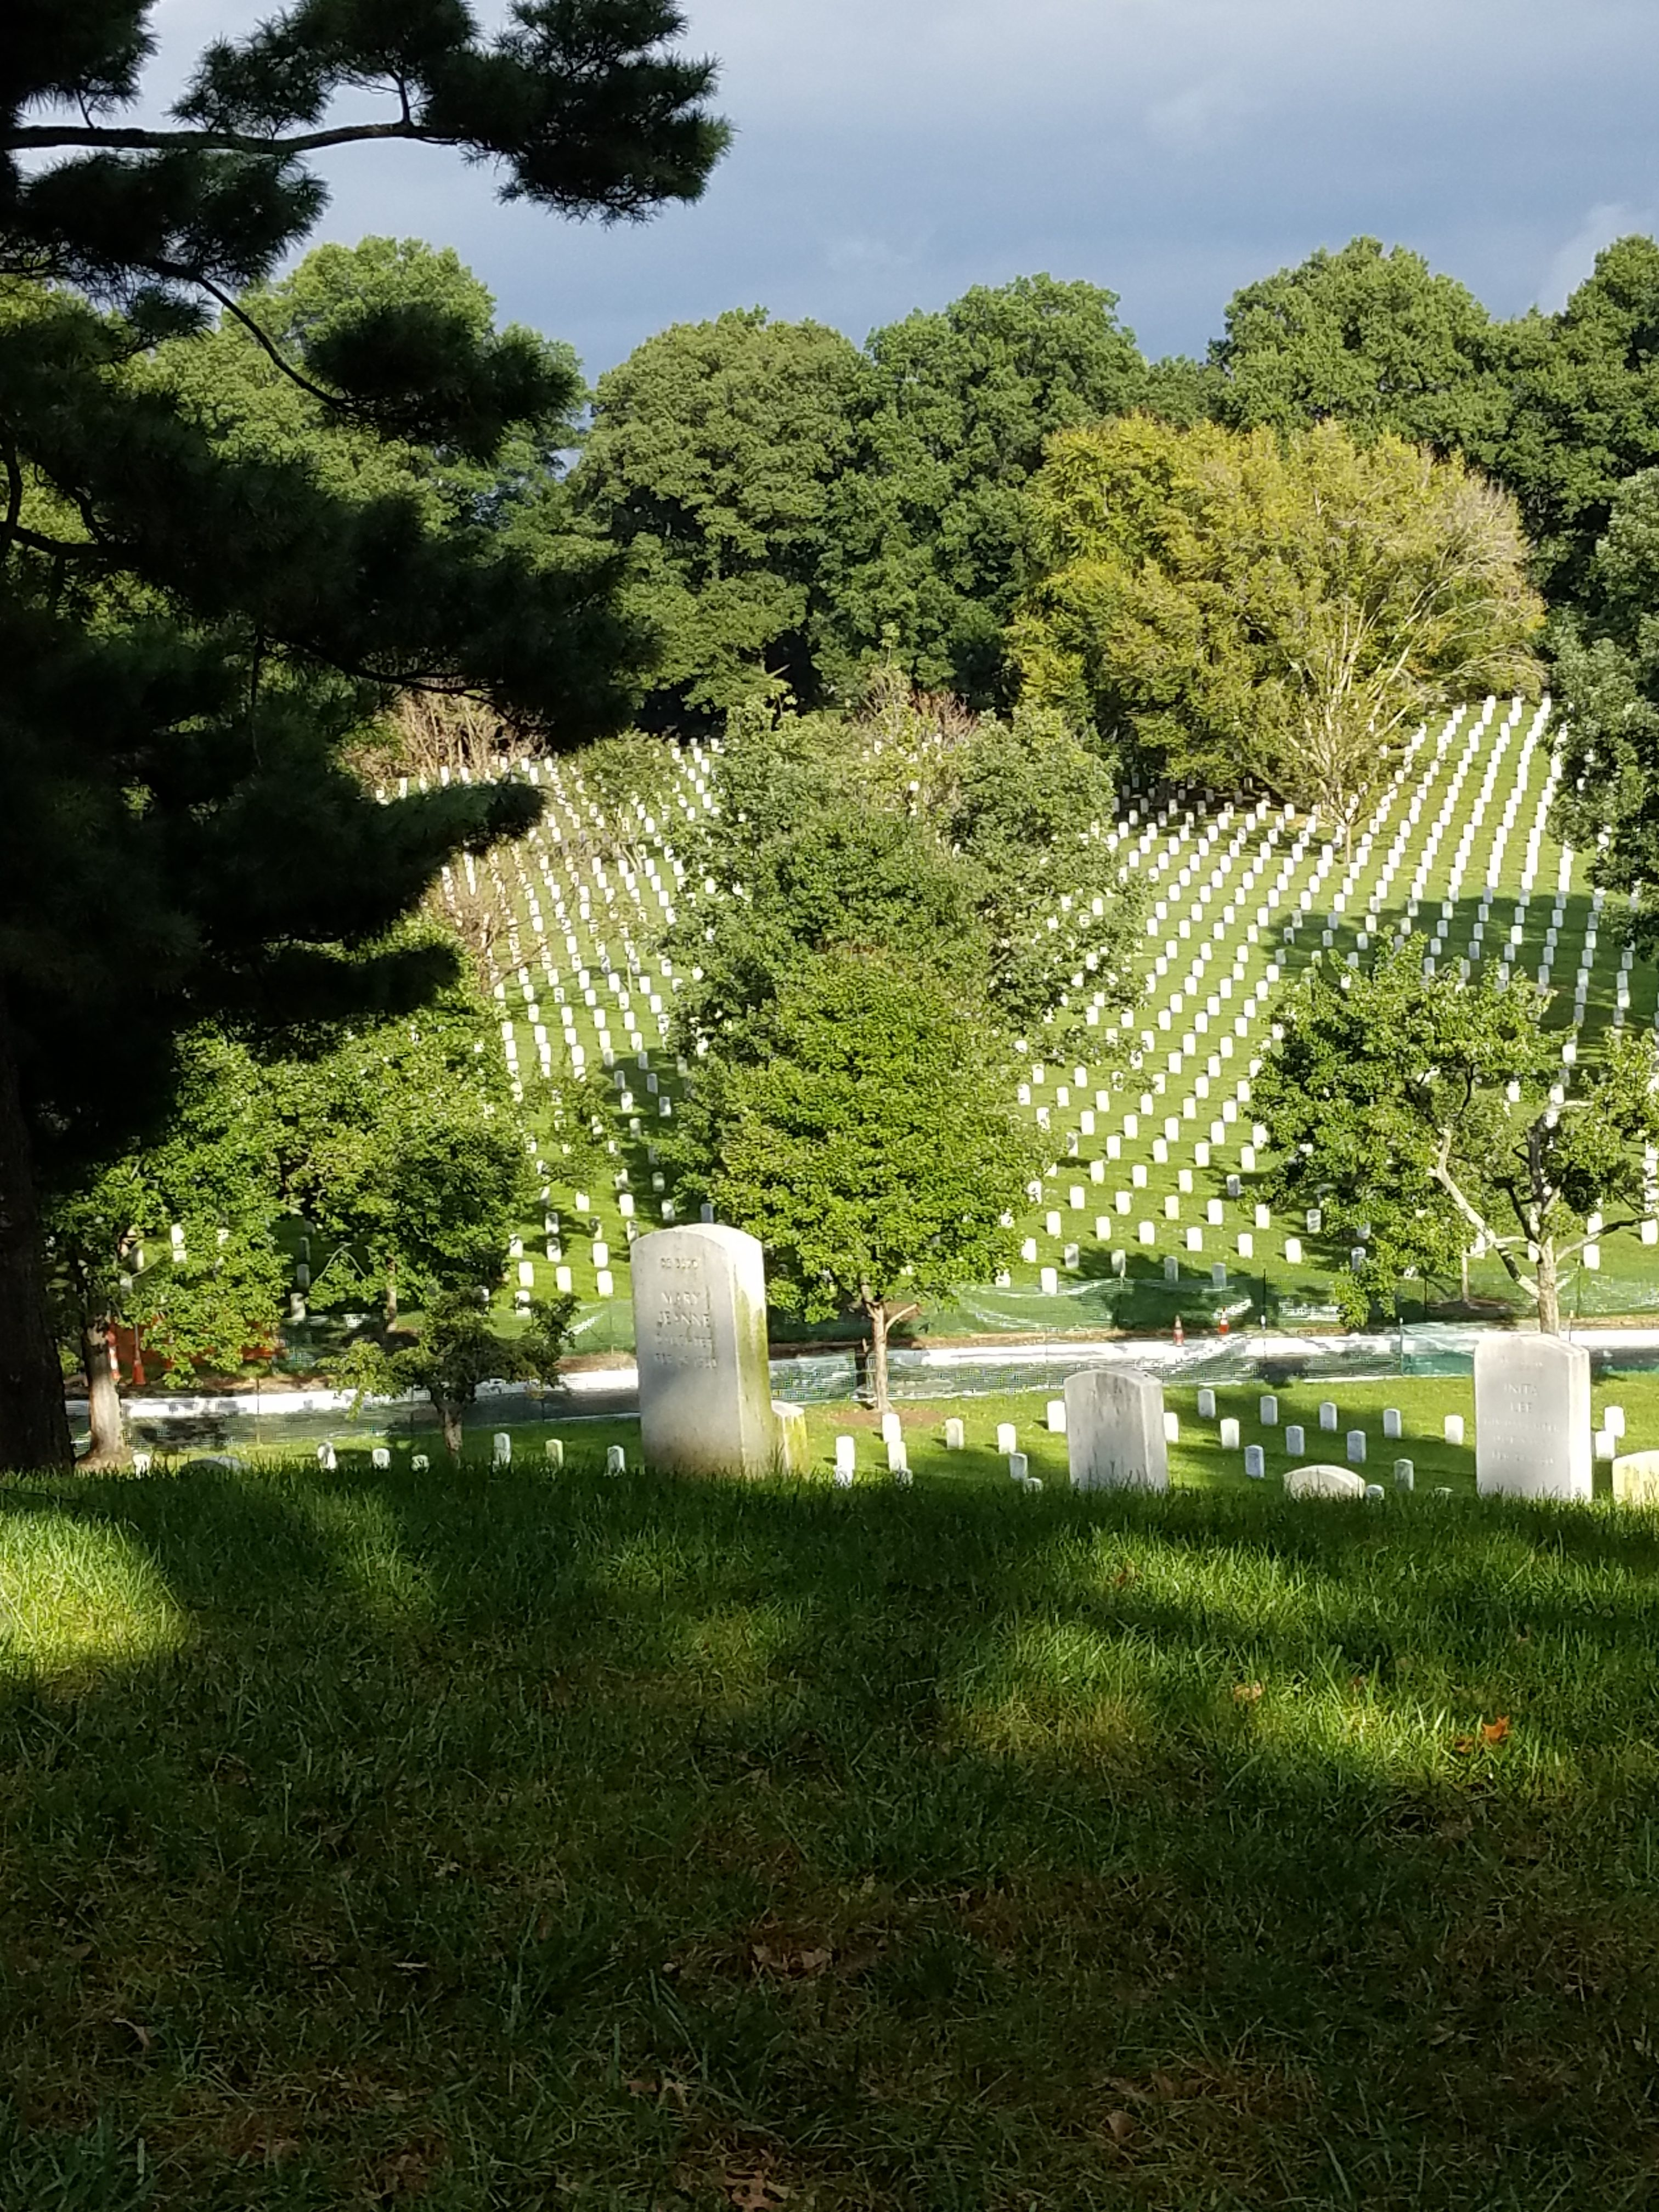 Why Everyone Should Visit Arlington National Cemetery